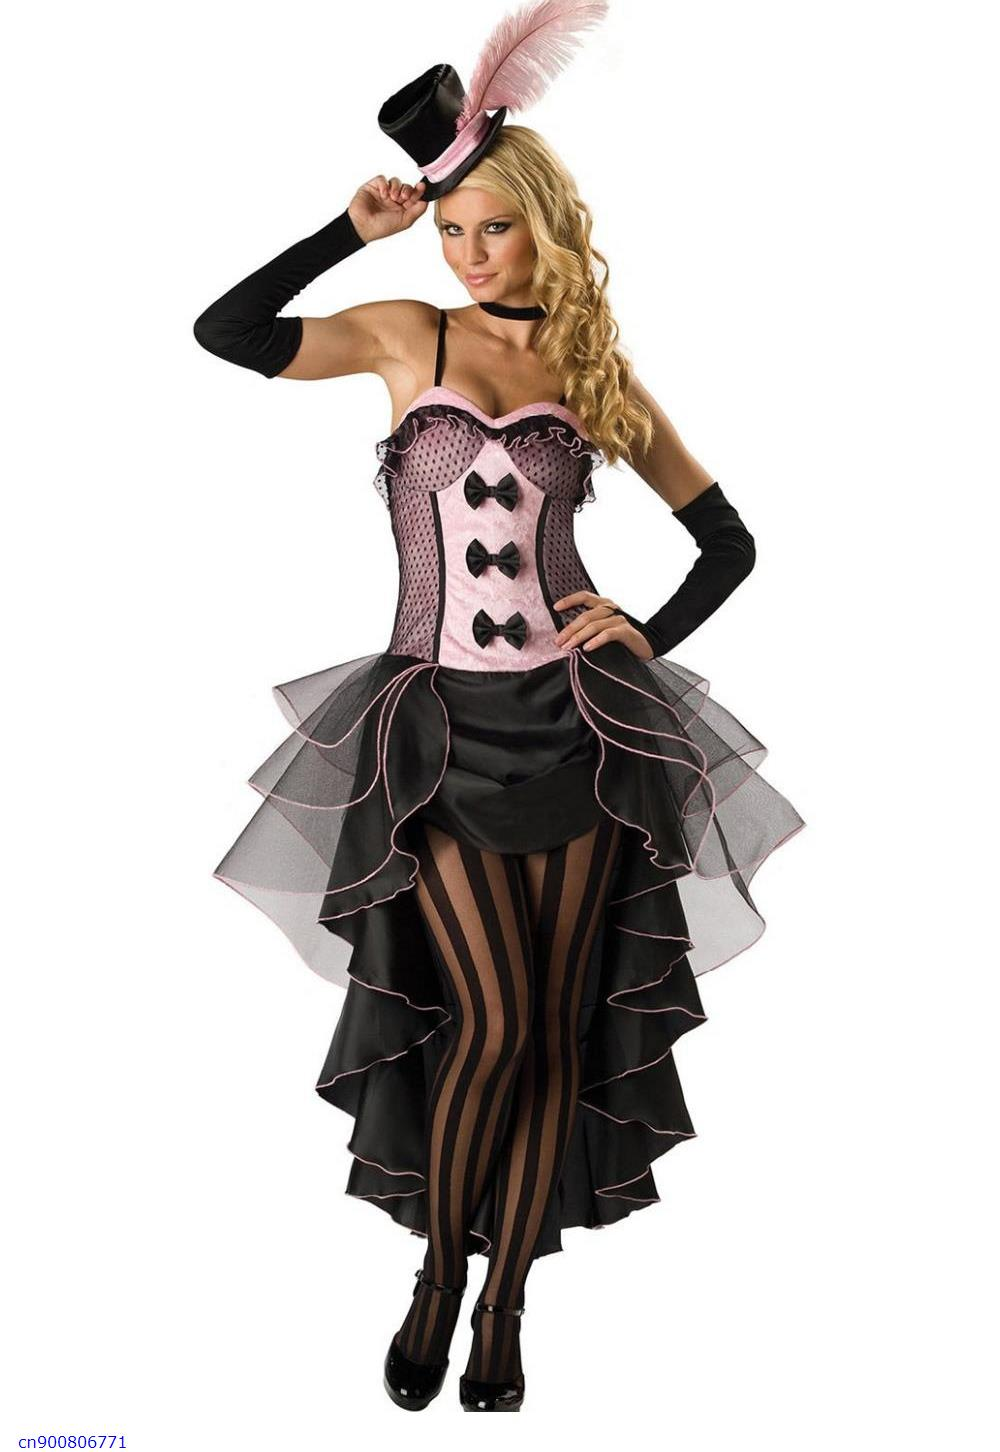 NEW ARRIVAL 2014 Sexy 5 Pieces  Fantasy Black Pink Burlesque Fancy Dress Costume  Sexy Role-playing adult halloween Costume SetОдежда и ак�е��уары<br><br><br>Aliexpress